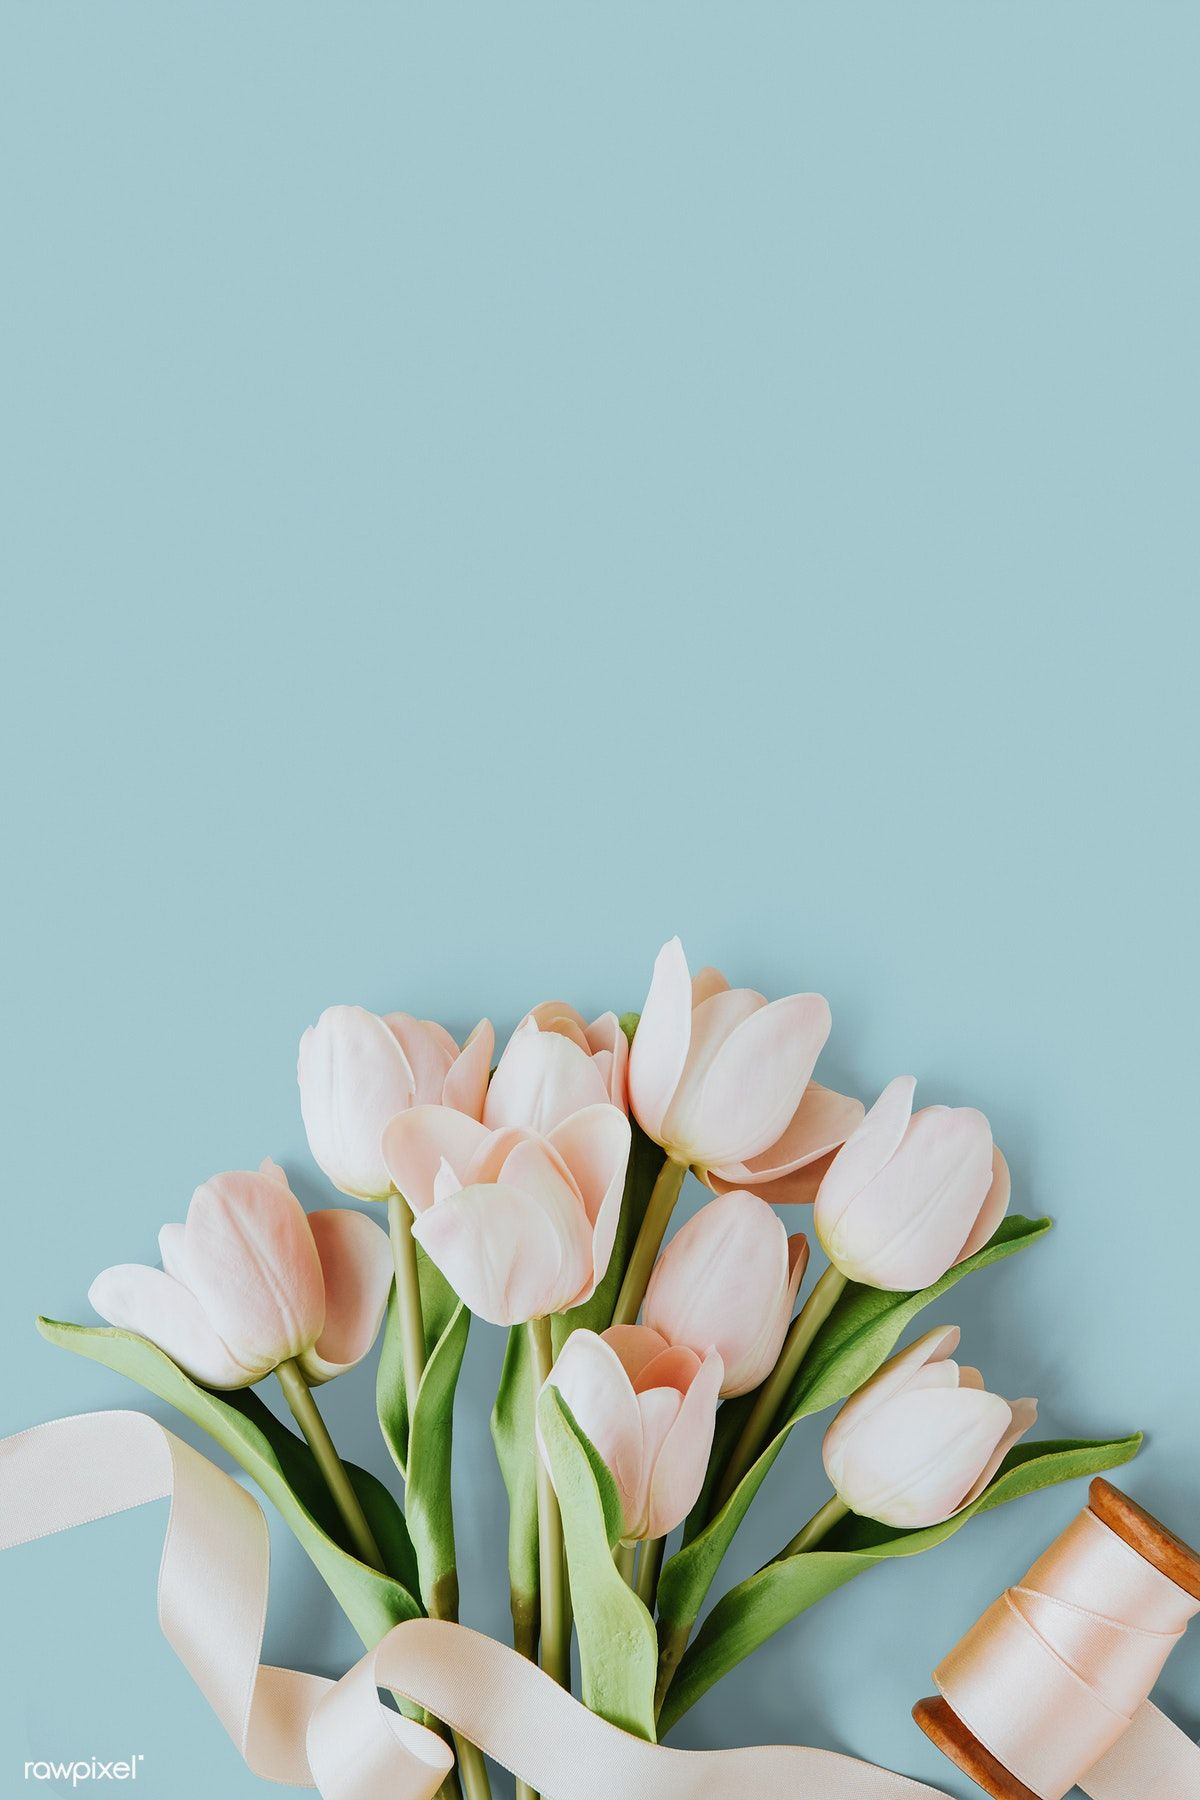 Download premium psd of Pink tulip on blank blue background template